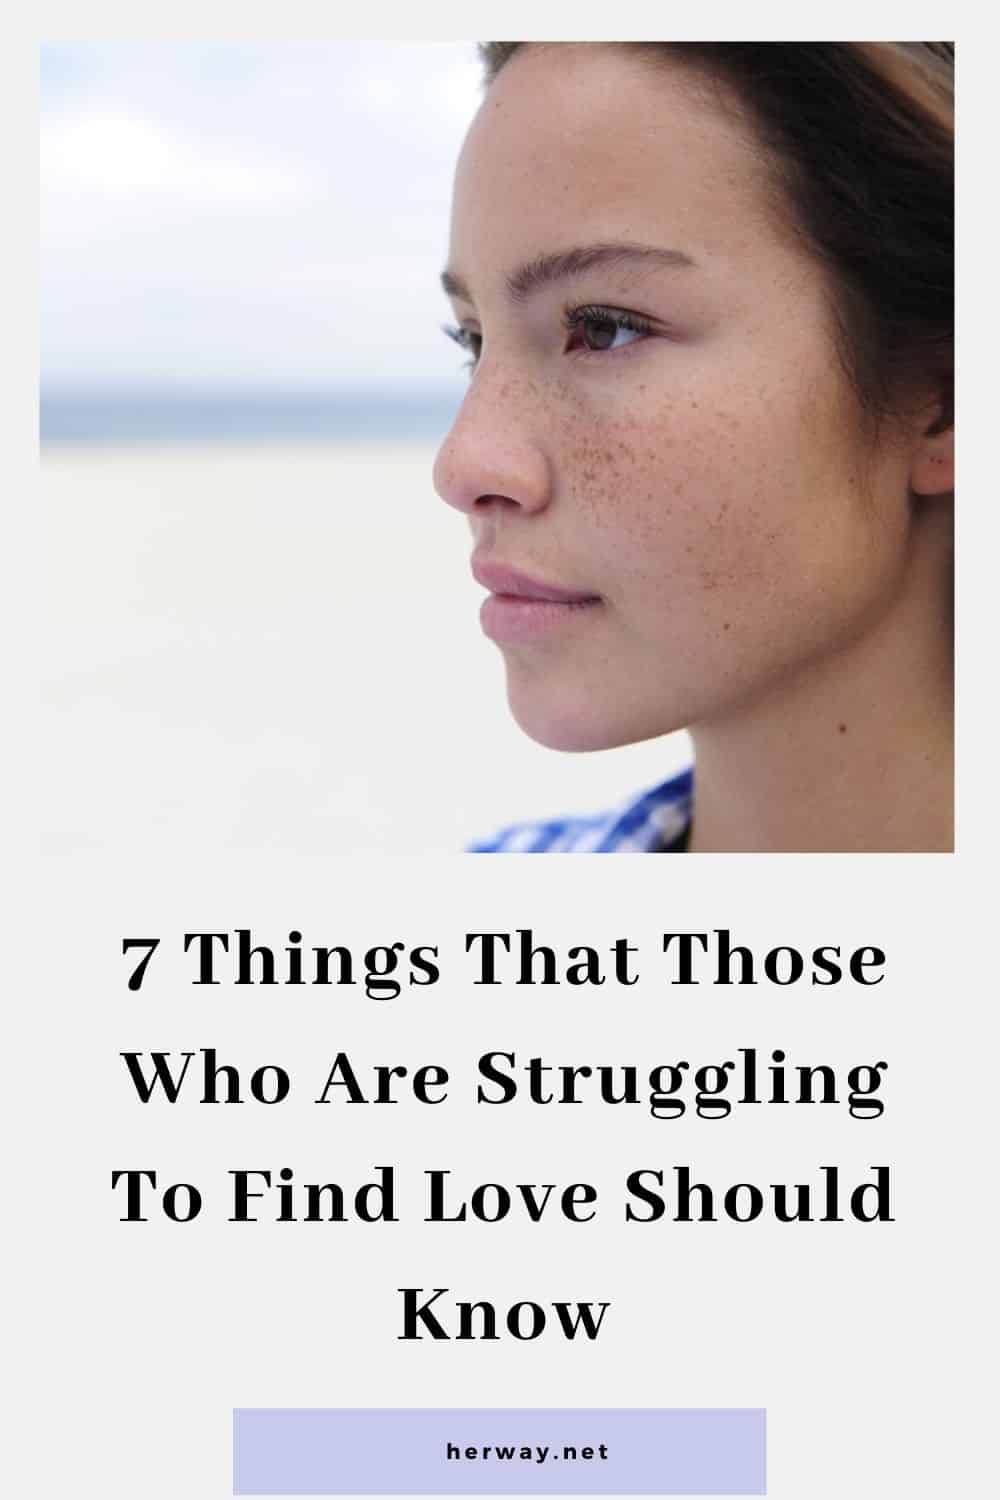 7 Things That Those Who Are Struggling To Find Love Should Know